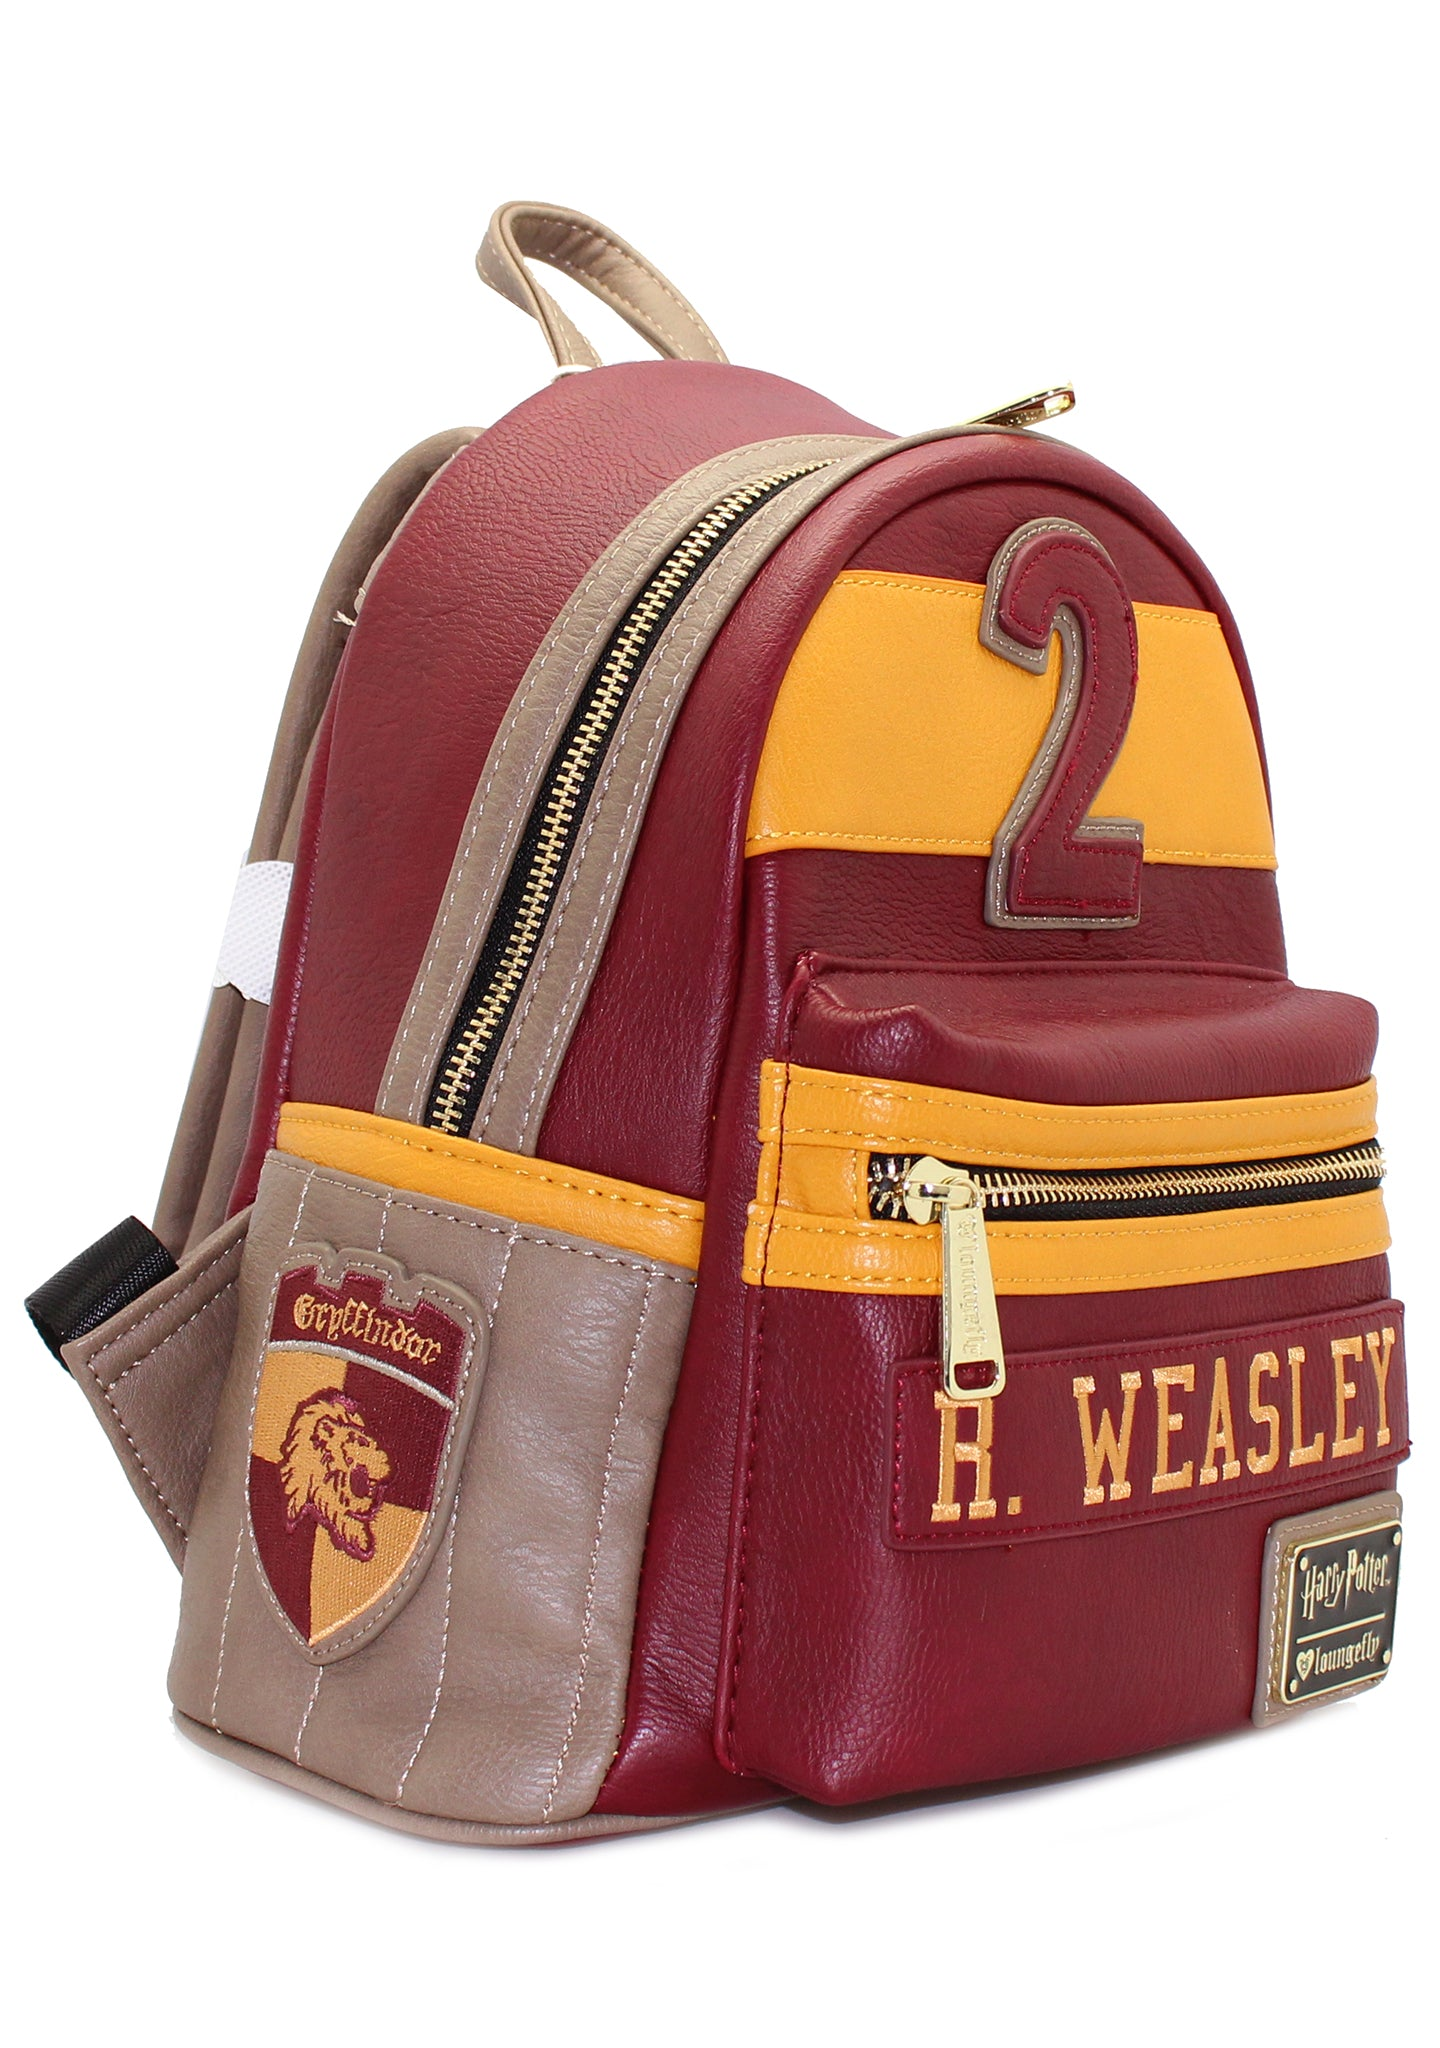 8ab488a8c8d X Harry Potter R. Weasley Gryffindor Mini Backpack